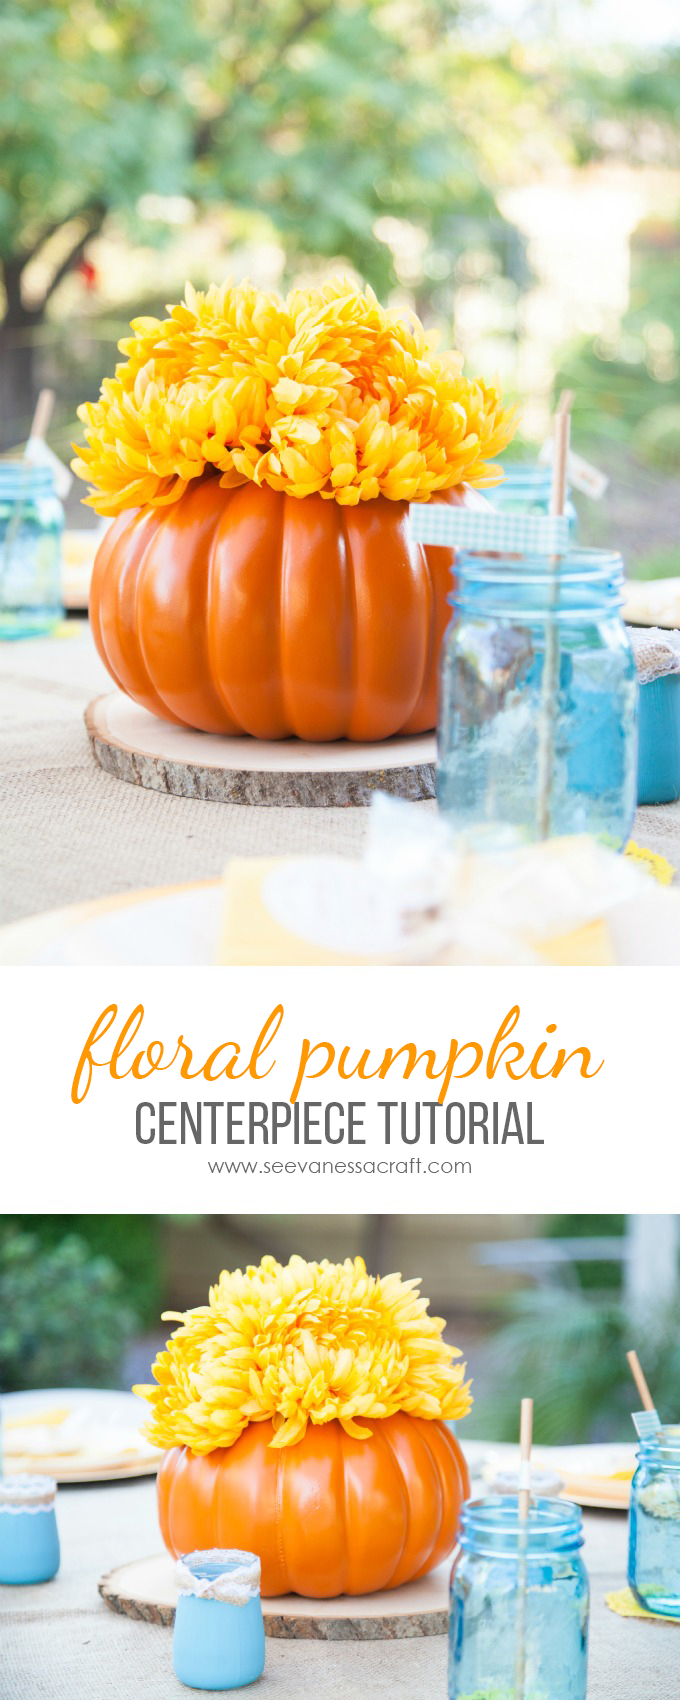 PumpkinCenterpiece copy